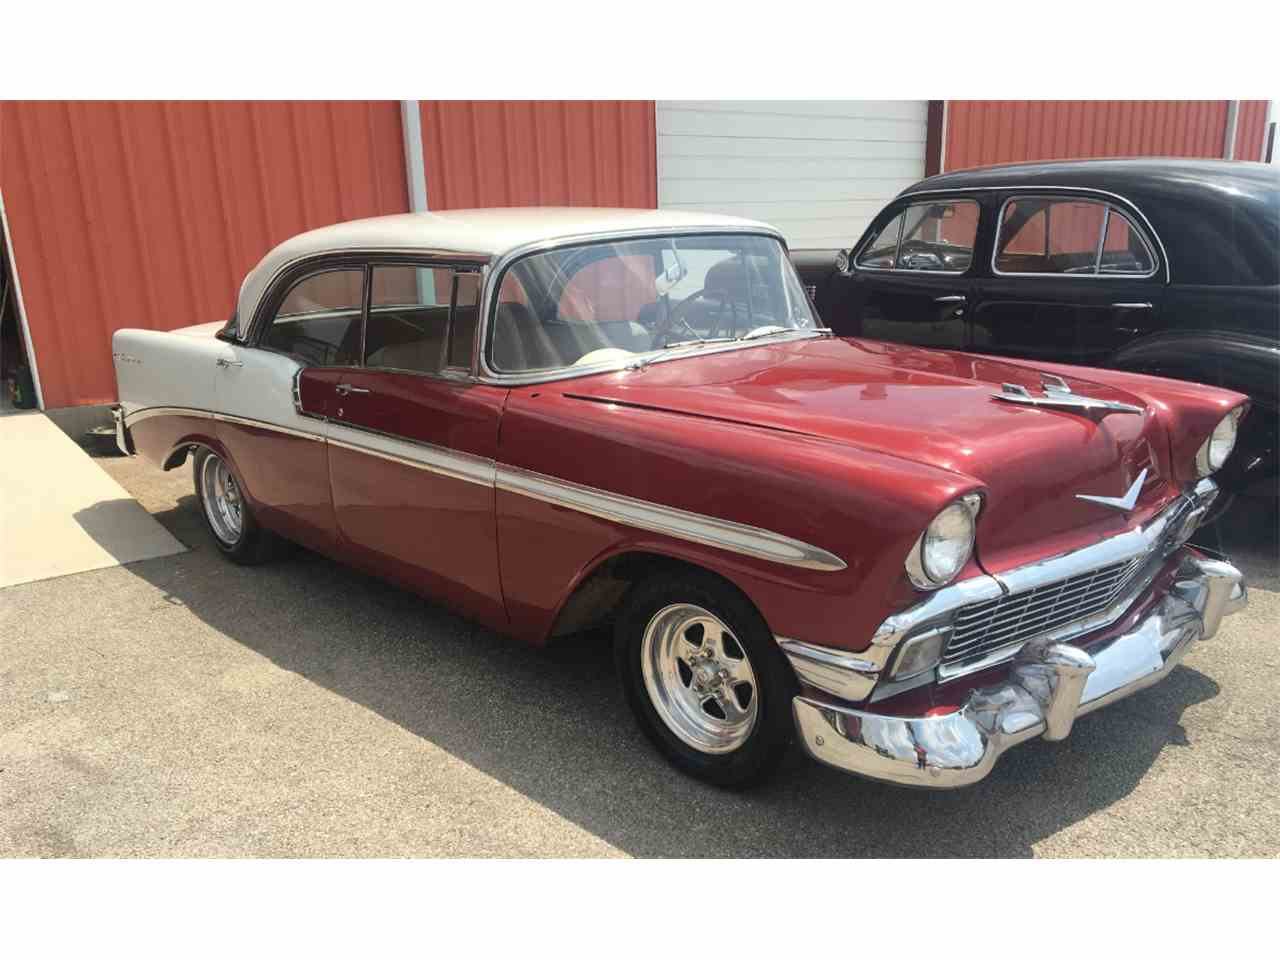 1956 chevrolet bel air for sale classic car liquidators - 1956 Chevrolet Bel Air For Sale Cc 971732